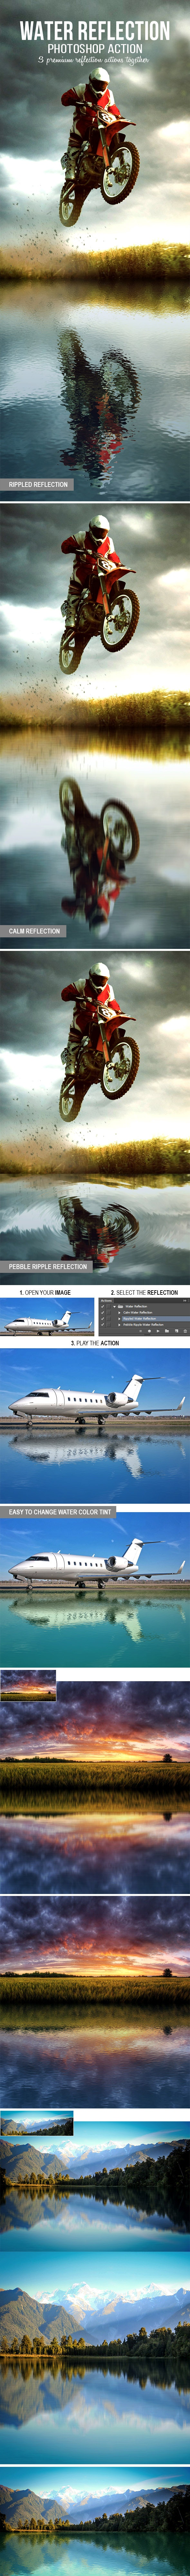 3-in-1 Water Reflection Photoshop Action - Photo Effects Actions